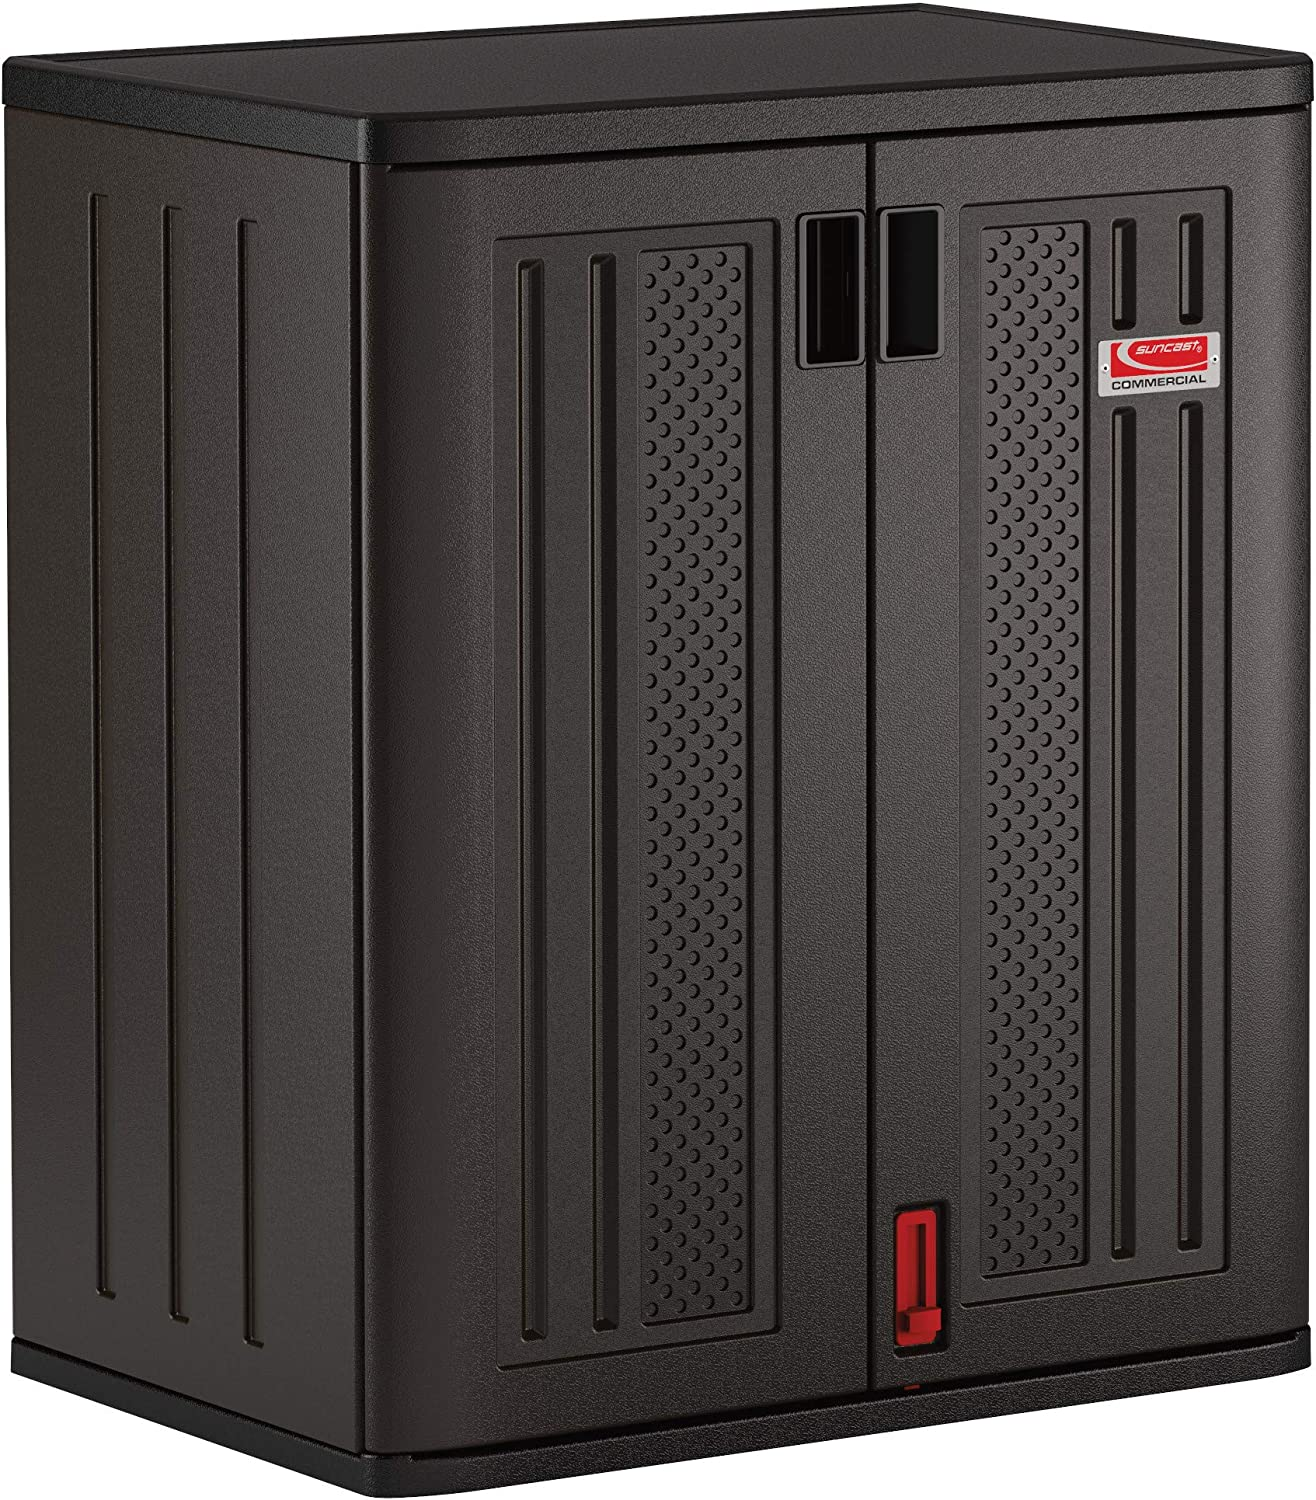 Suncast Be super welcome Commercial Black Blow Molded Max 74% OFF Tall Shed C 2 Storage Shelf